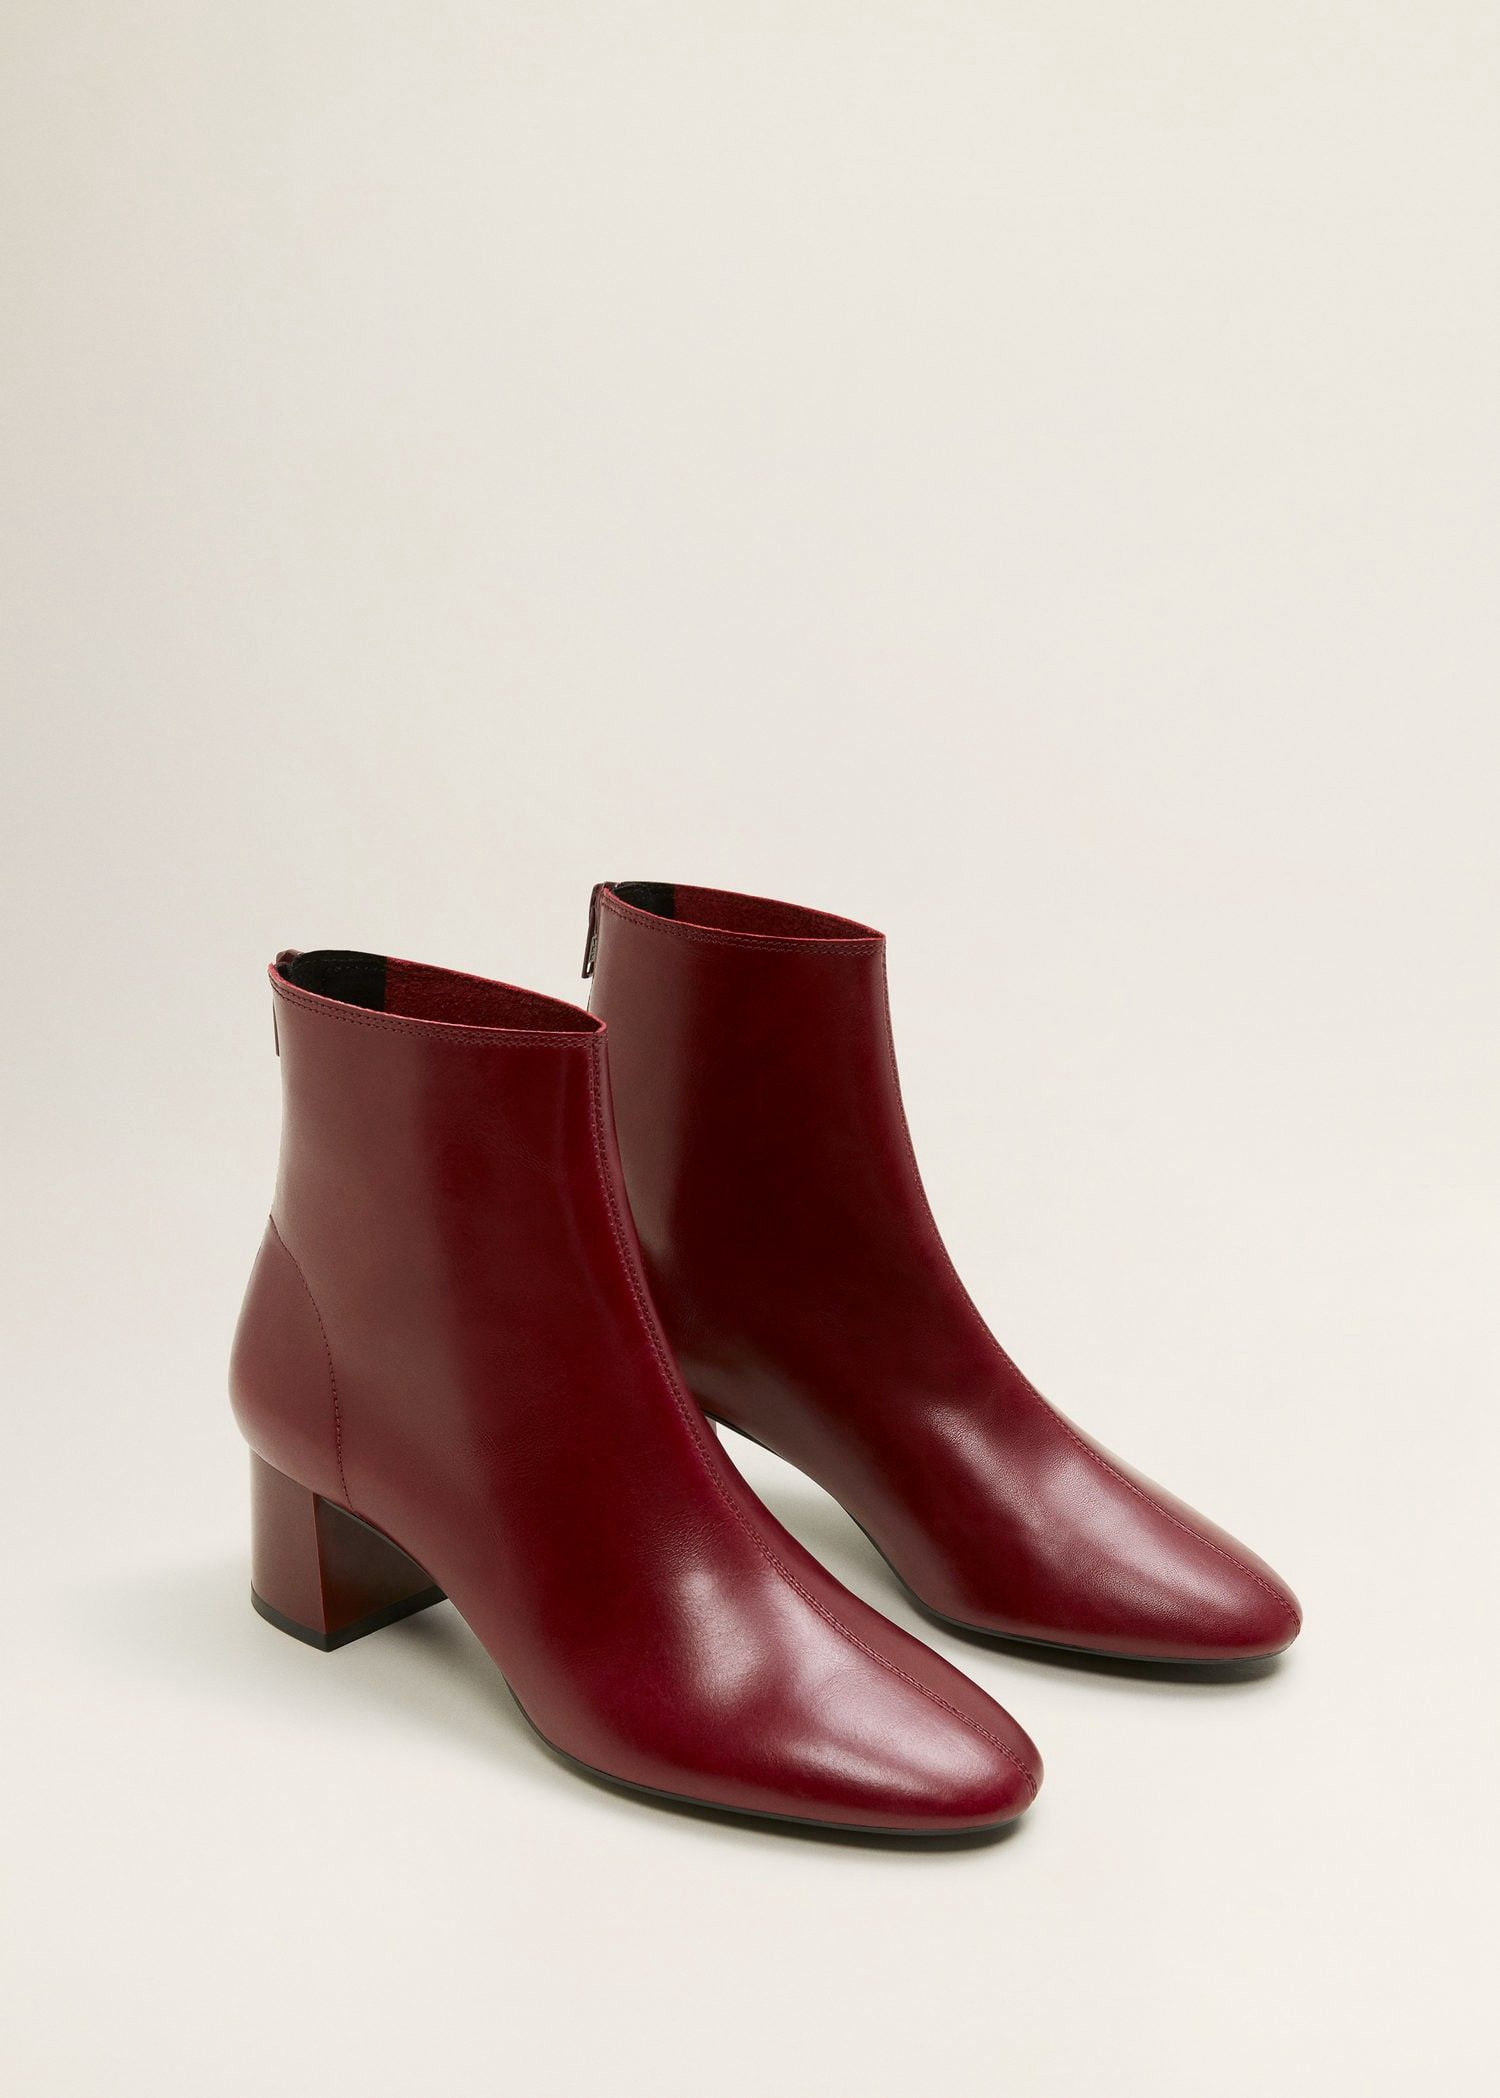 d63f1c828a7 Mango Heel Leather Ankle Boot - 5 in 2019 | Products | Boots, Shoe ...